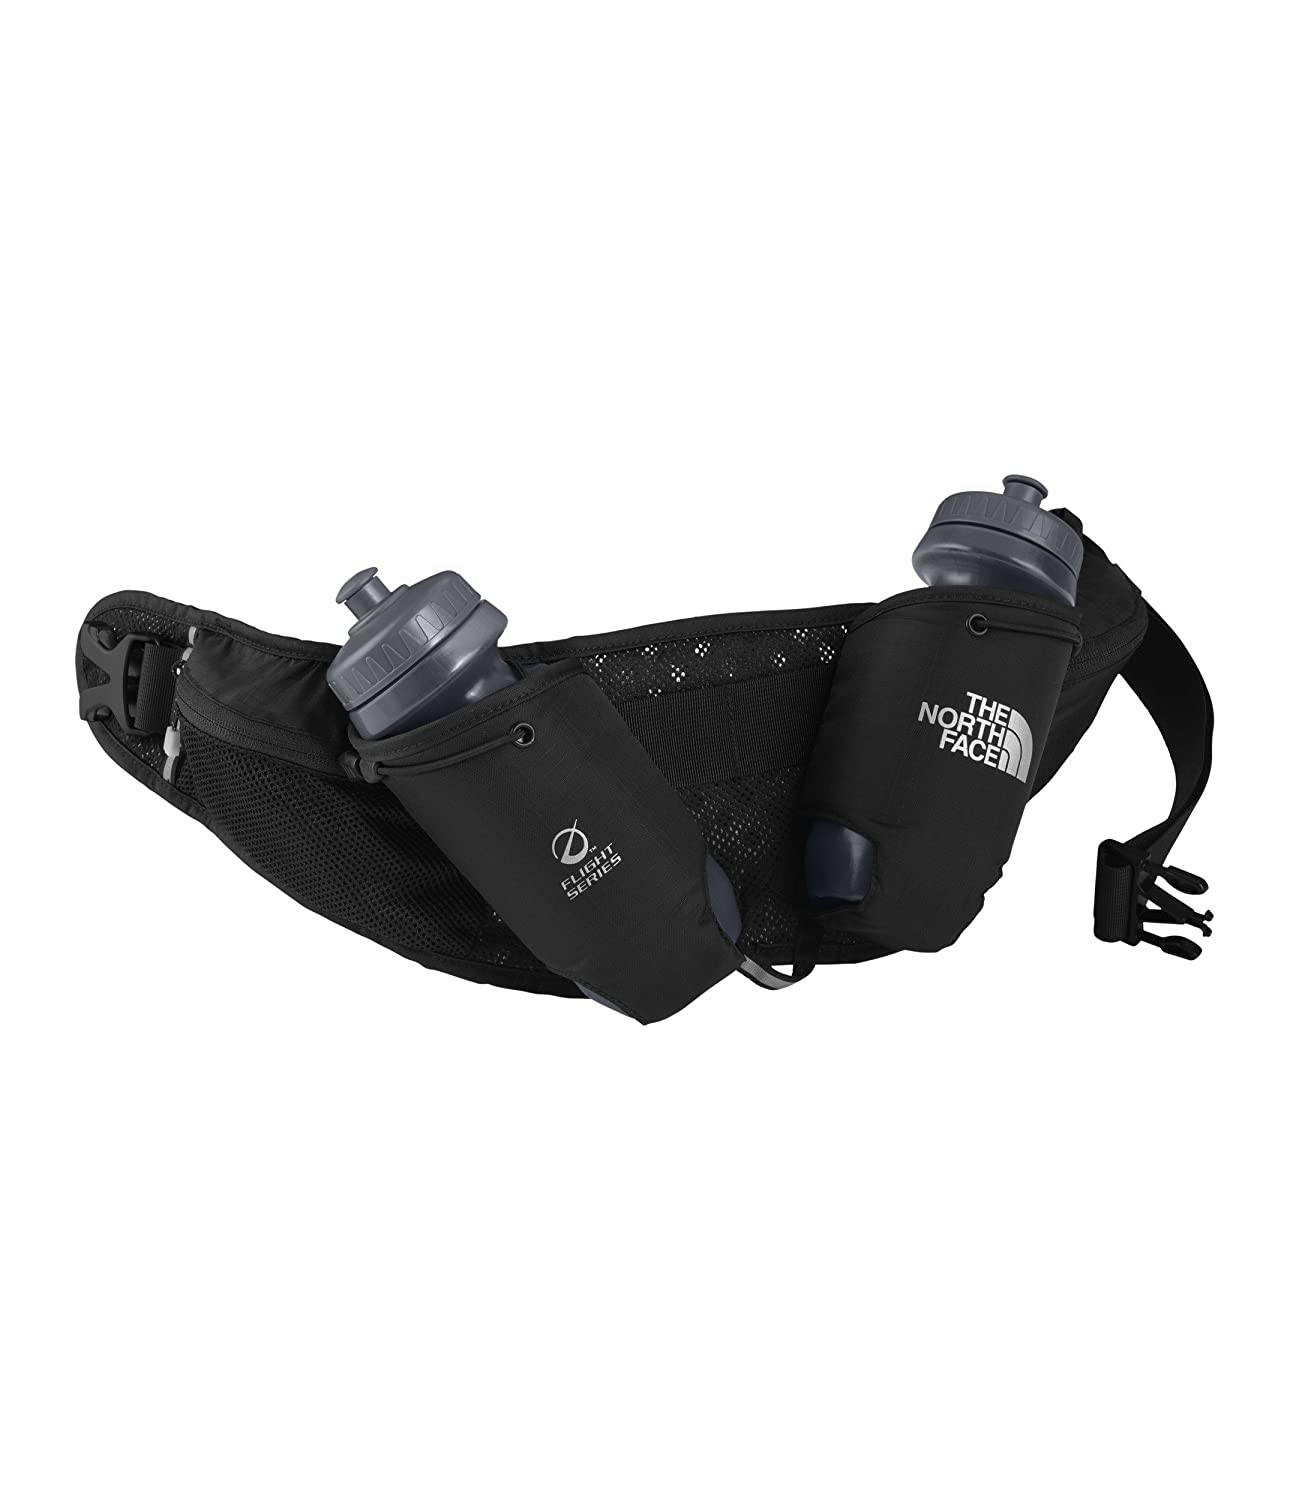 5b8d6c27c THE NORTH FACE ENDURO BELT [1 BOTTLE]: Amazon.co.uk: Sports & Outdoors